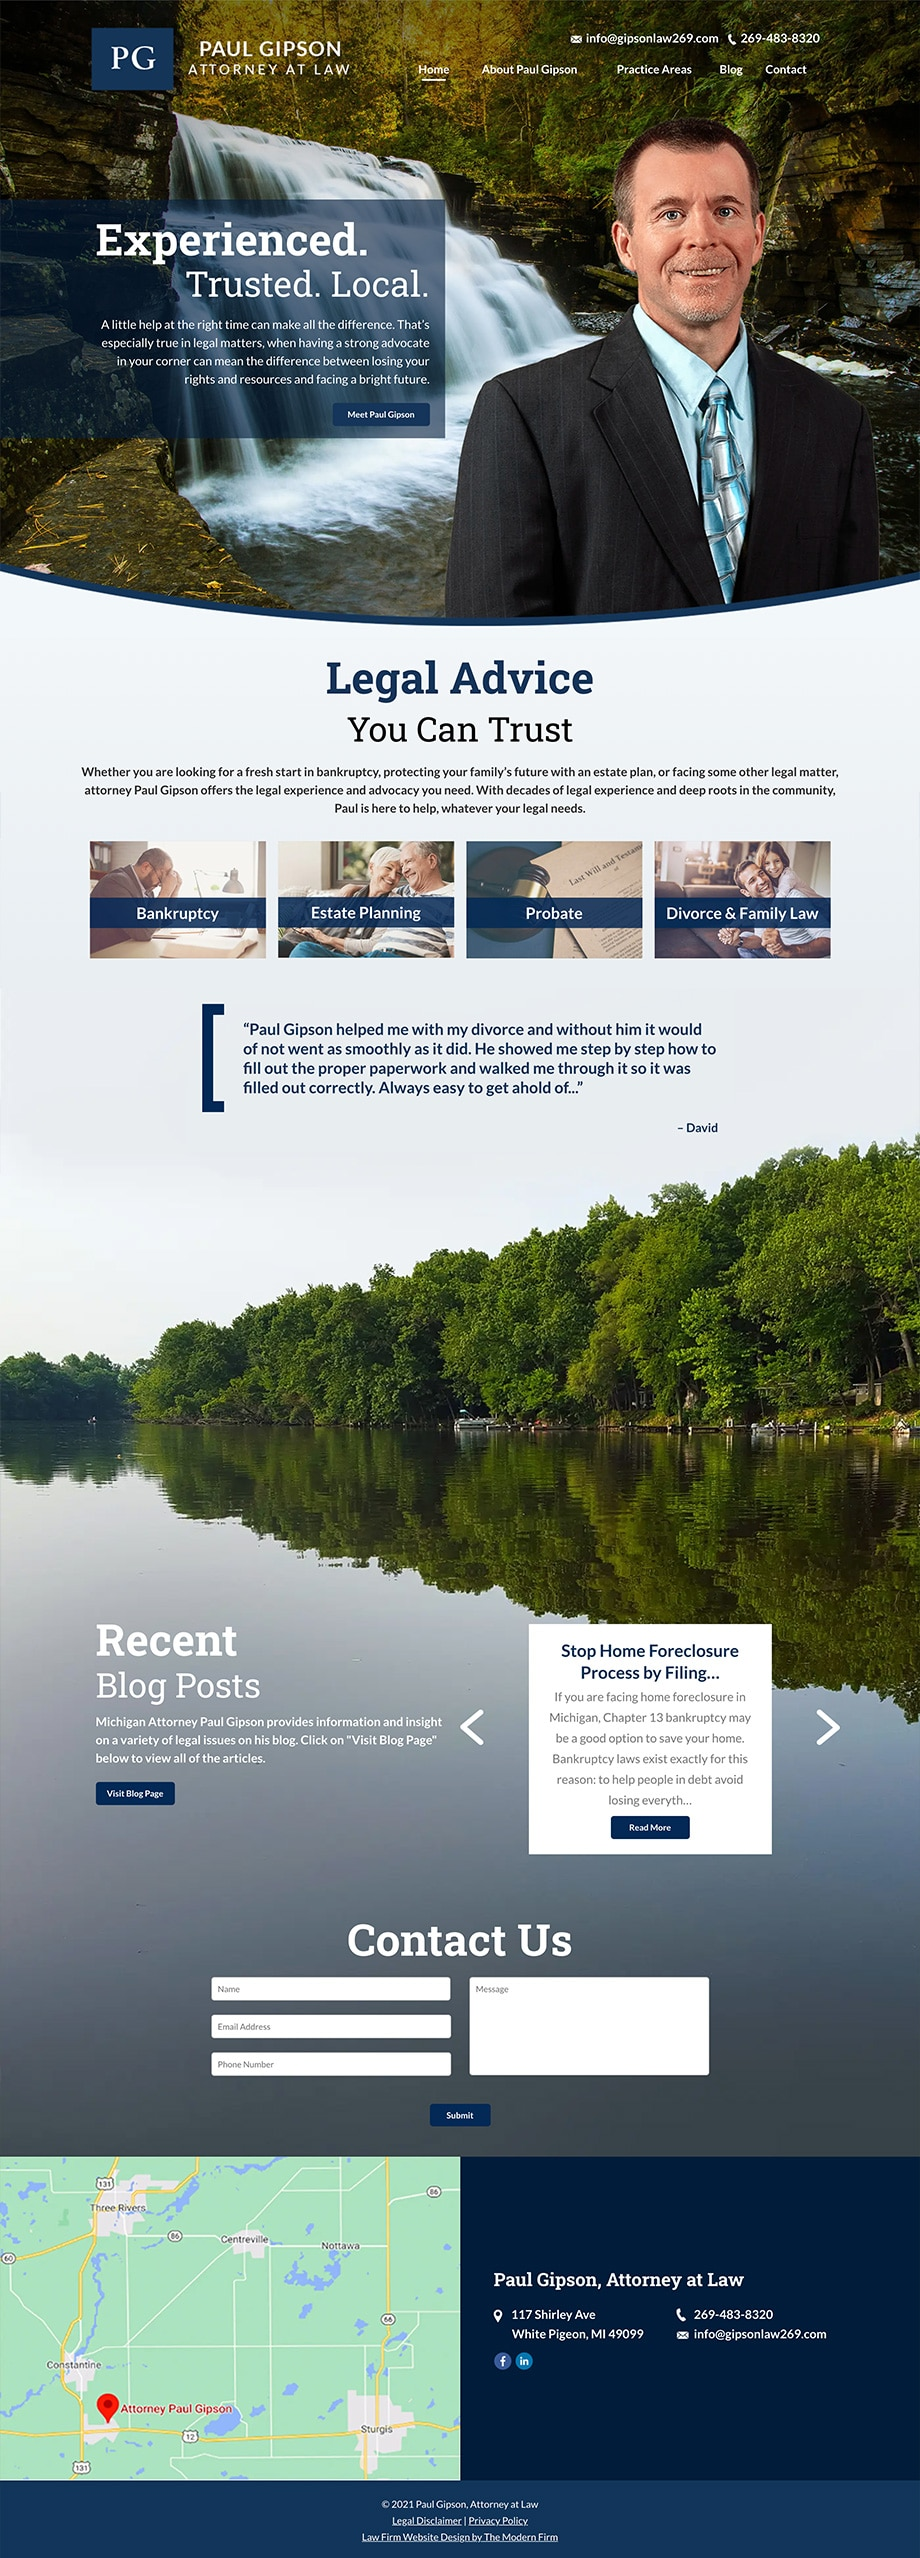 Law Firm Website Design for Paul Gipson, Attorney at Law